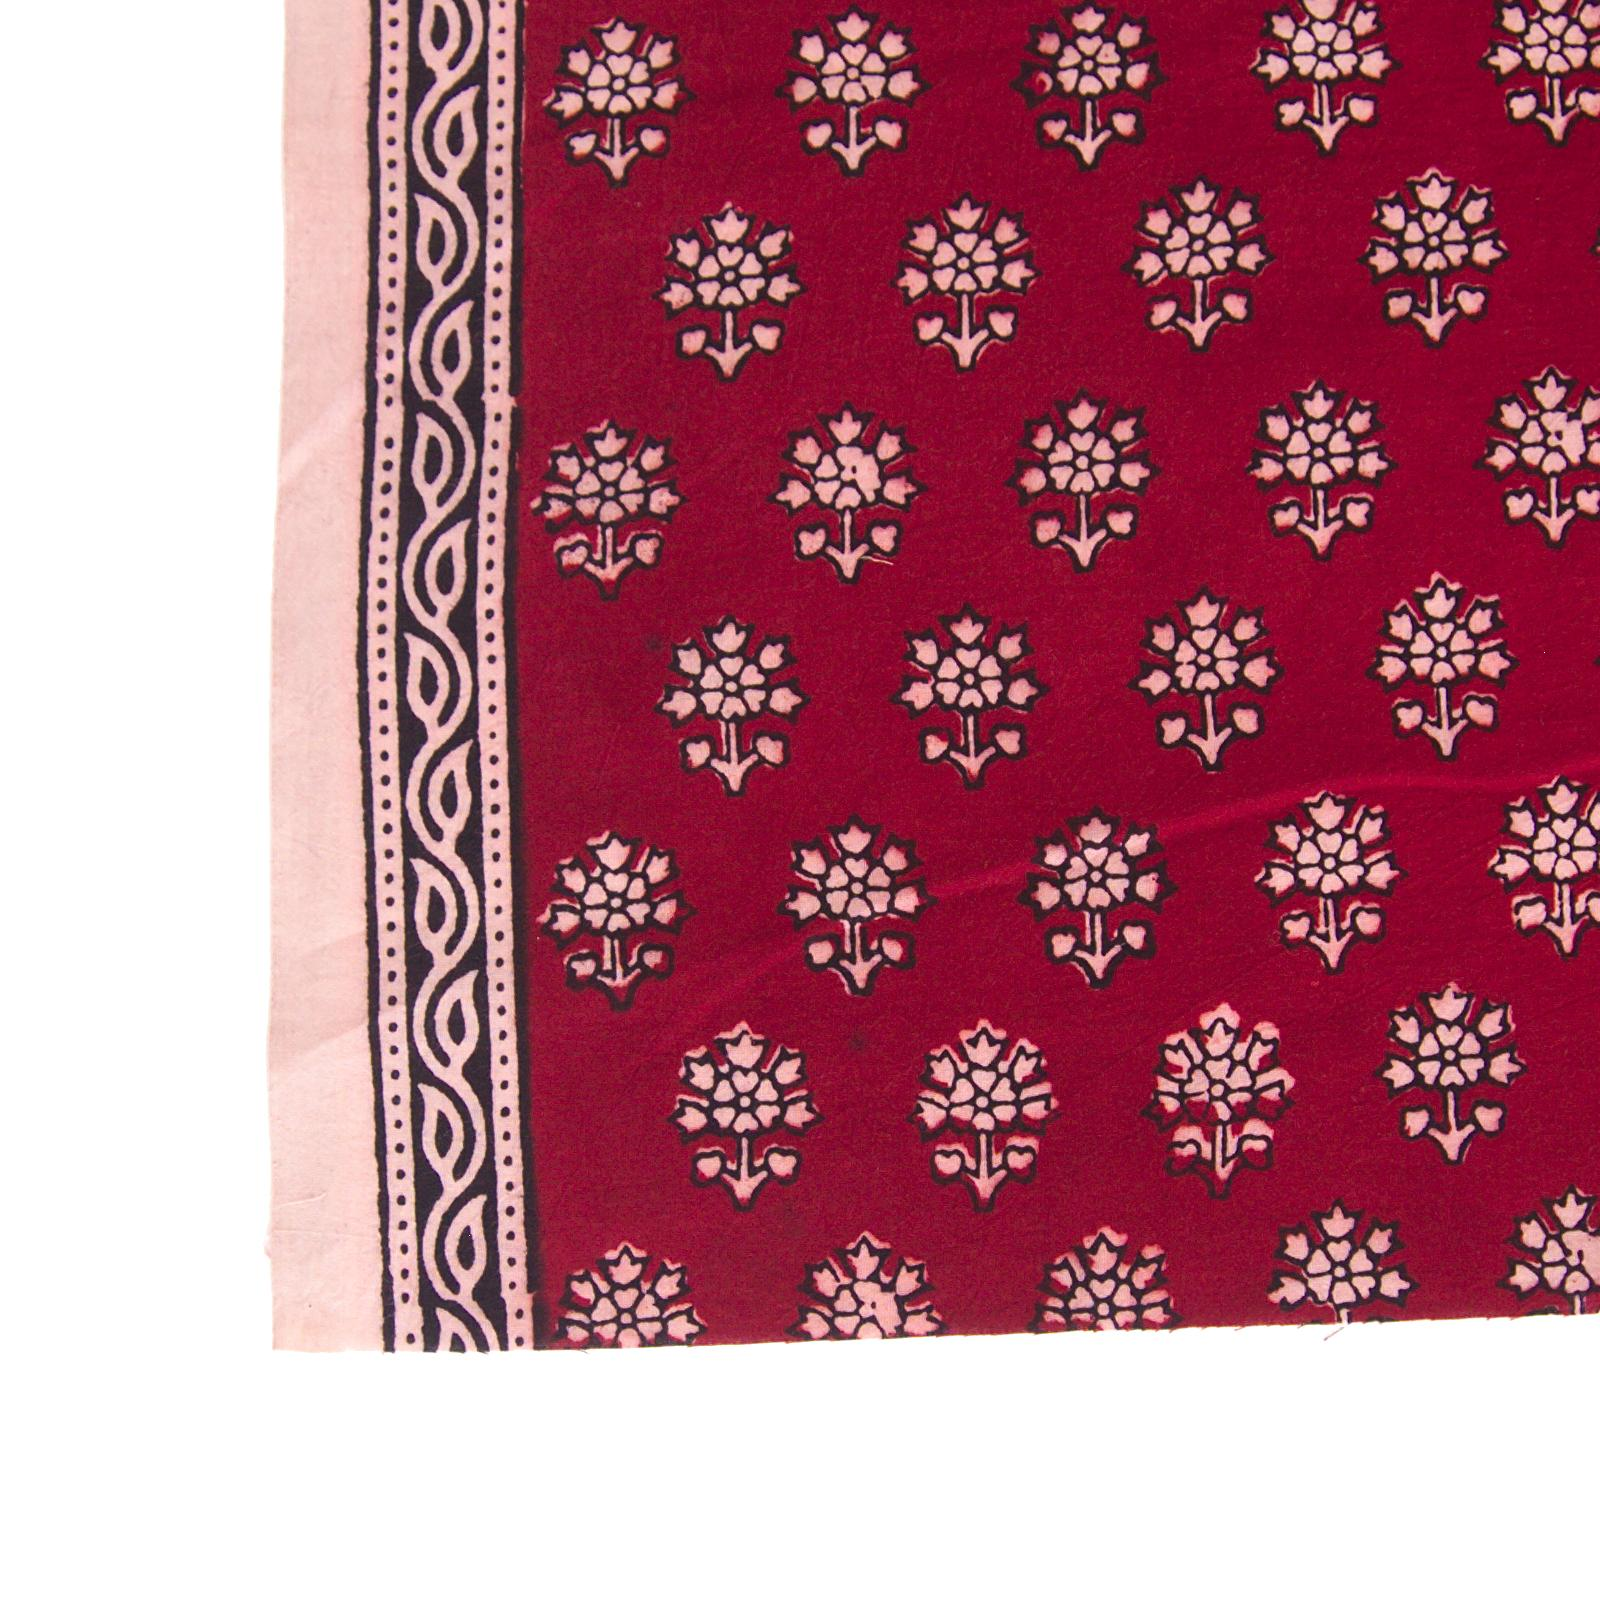 100% Block-Printed Cotton Fabric From India - New Perspective Design - Iron Rust Black & Alizarin Red Dyes - Border - Live